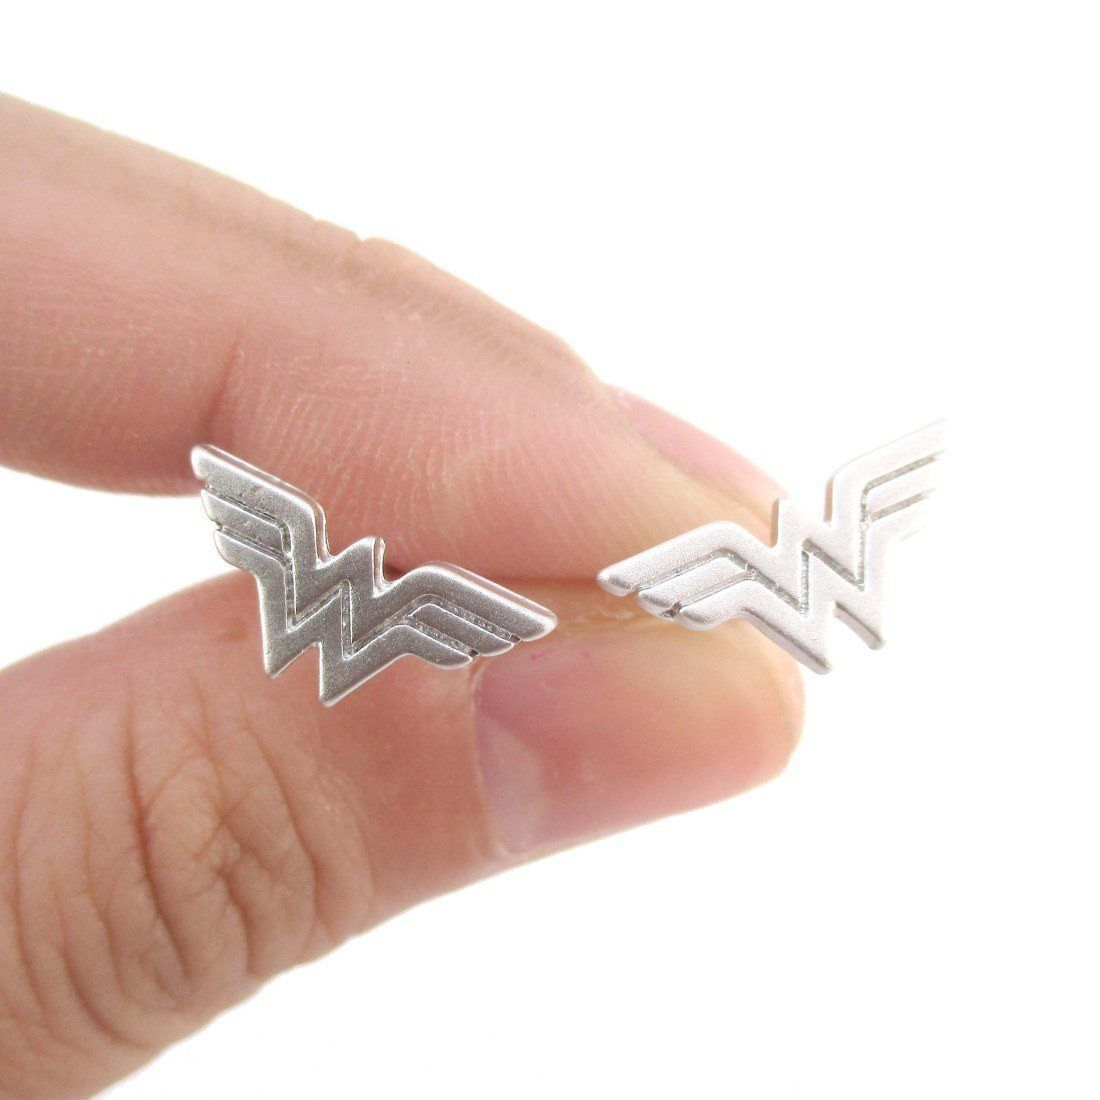 4db931e1d DC Heroes Wonder Woman Logo Shaped Stud Earrings in Silver | Allergy Free